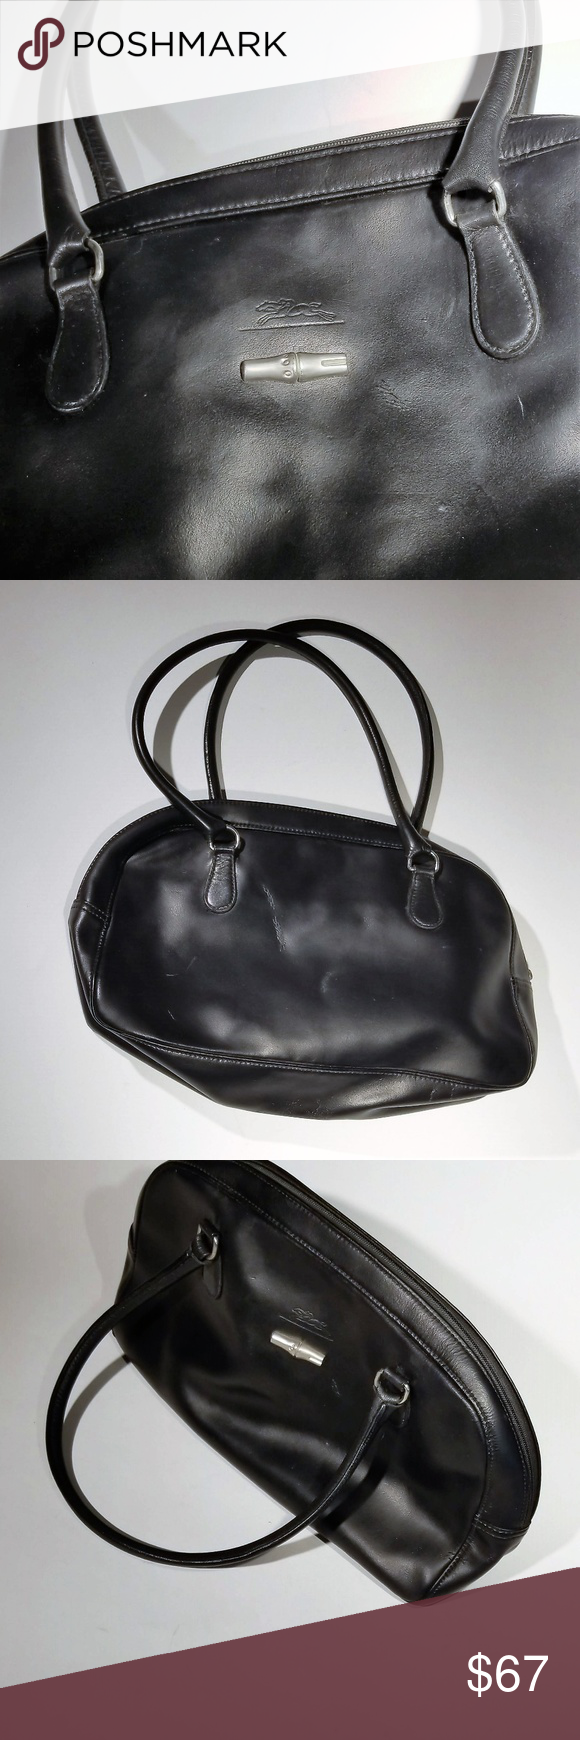 e1a6bed6f126 Longchamp Roseau black leather purse Longchamp 1948 black leather purse  Style  Roseau Roughly 13 inches long by 8 inches high Some wear visible